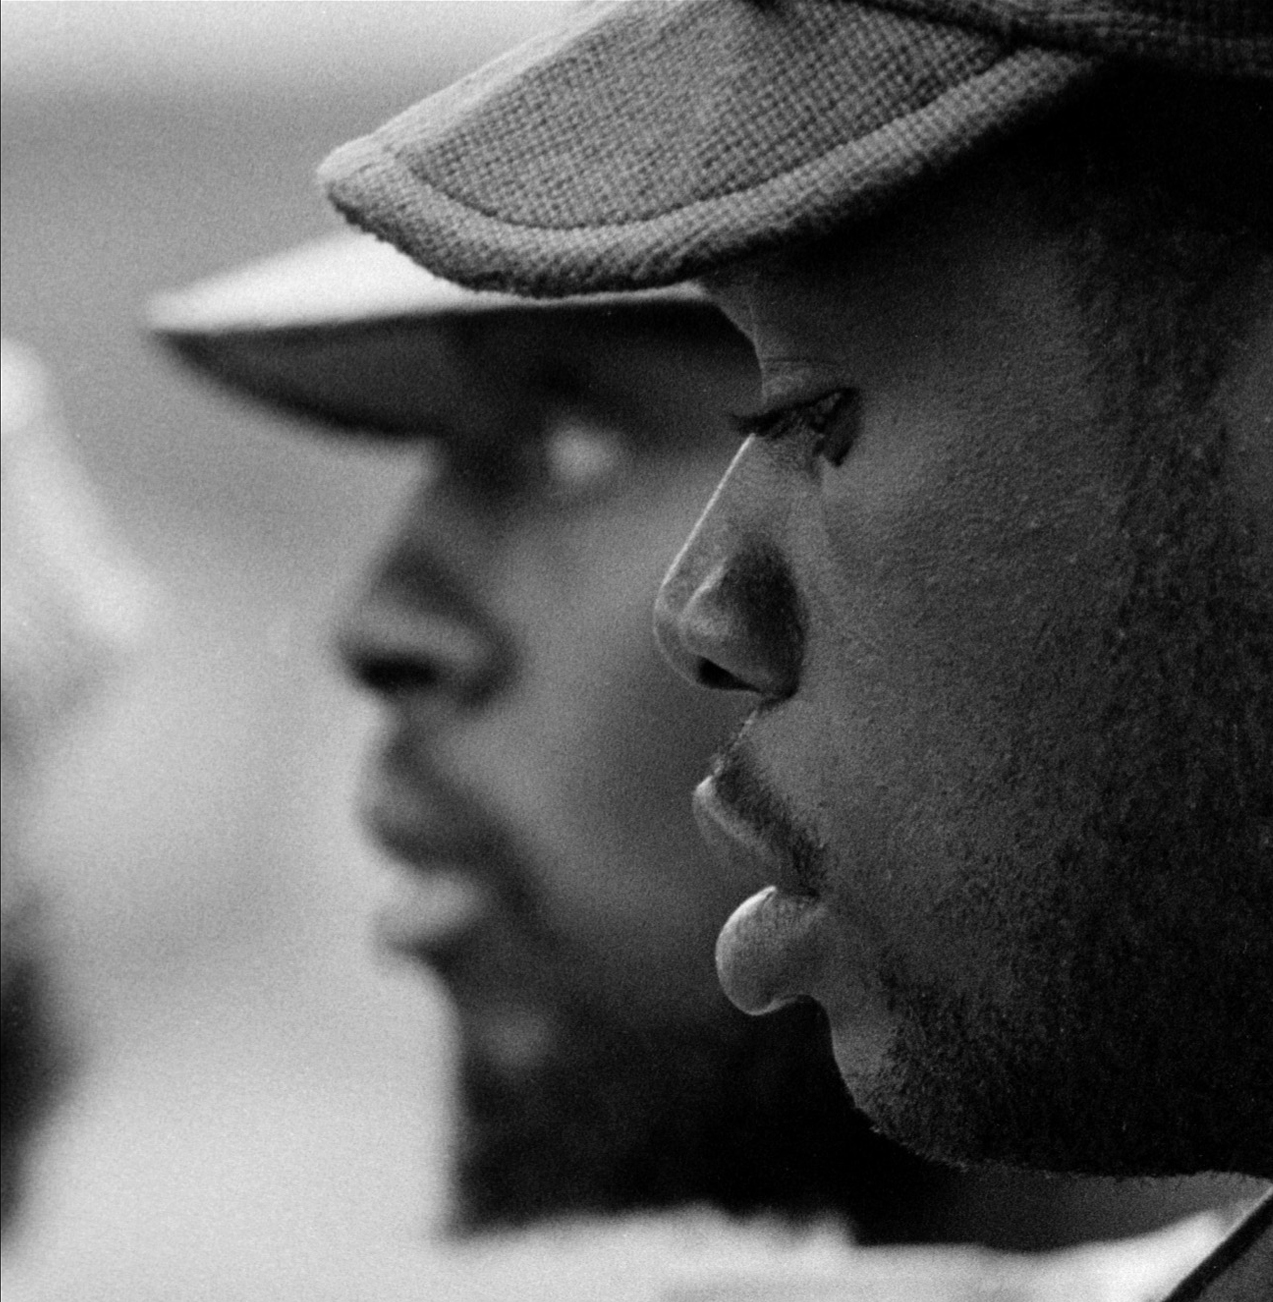 Pras and Wyclef of The Fugees, Tibetan Freedom Concert, 6/15/96